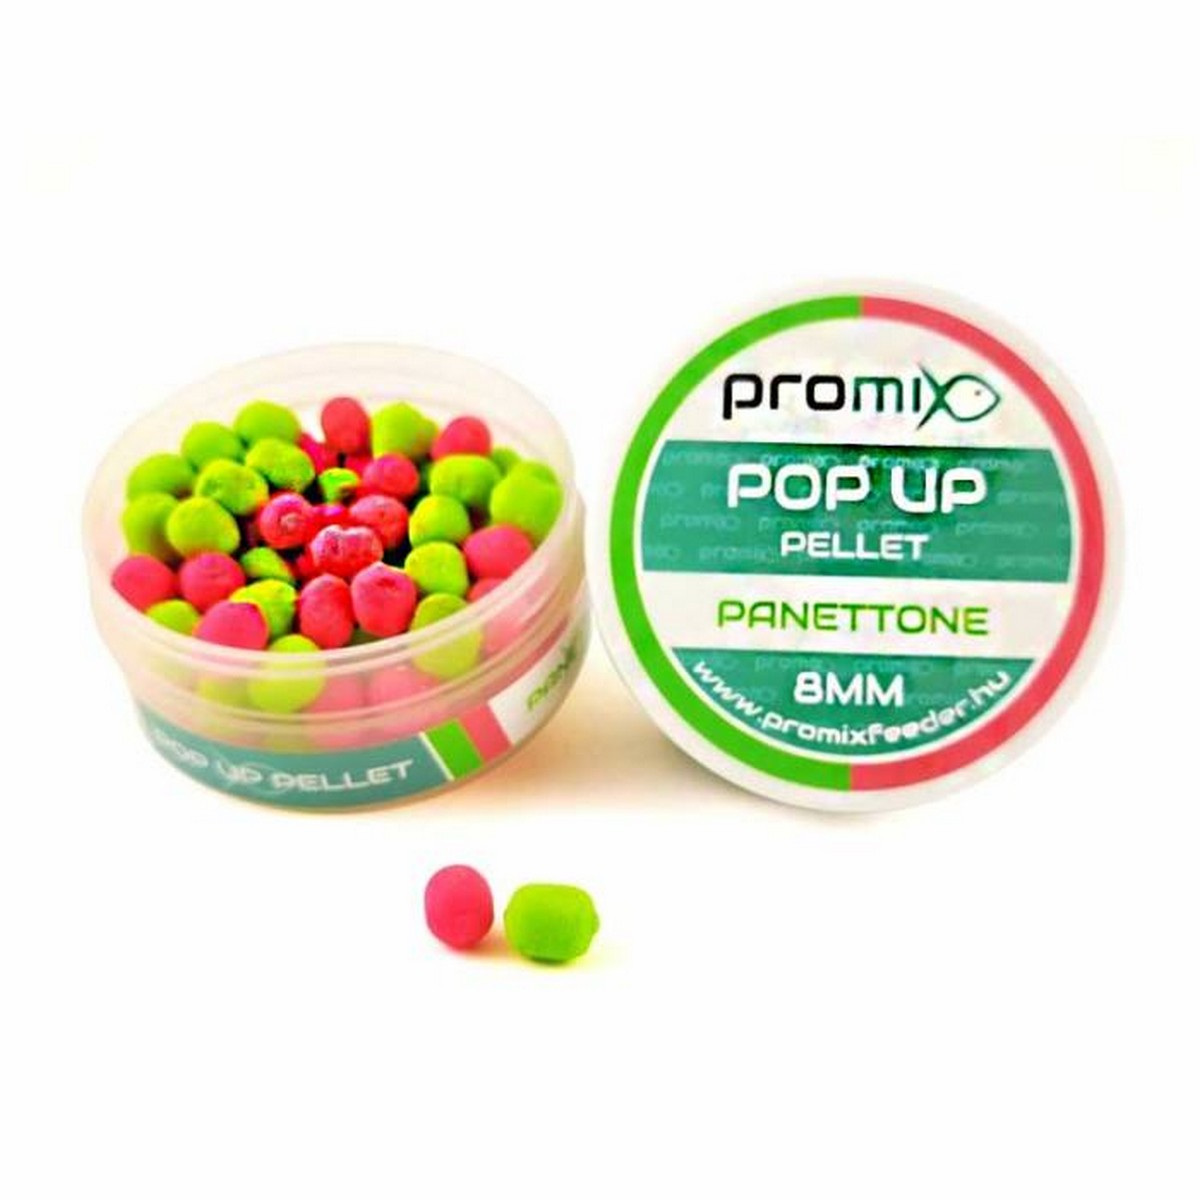 PROMIX POP UP PELLET 8MM PANETTONE 20G